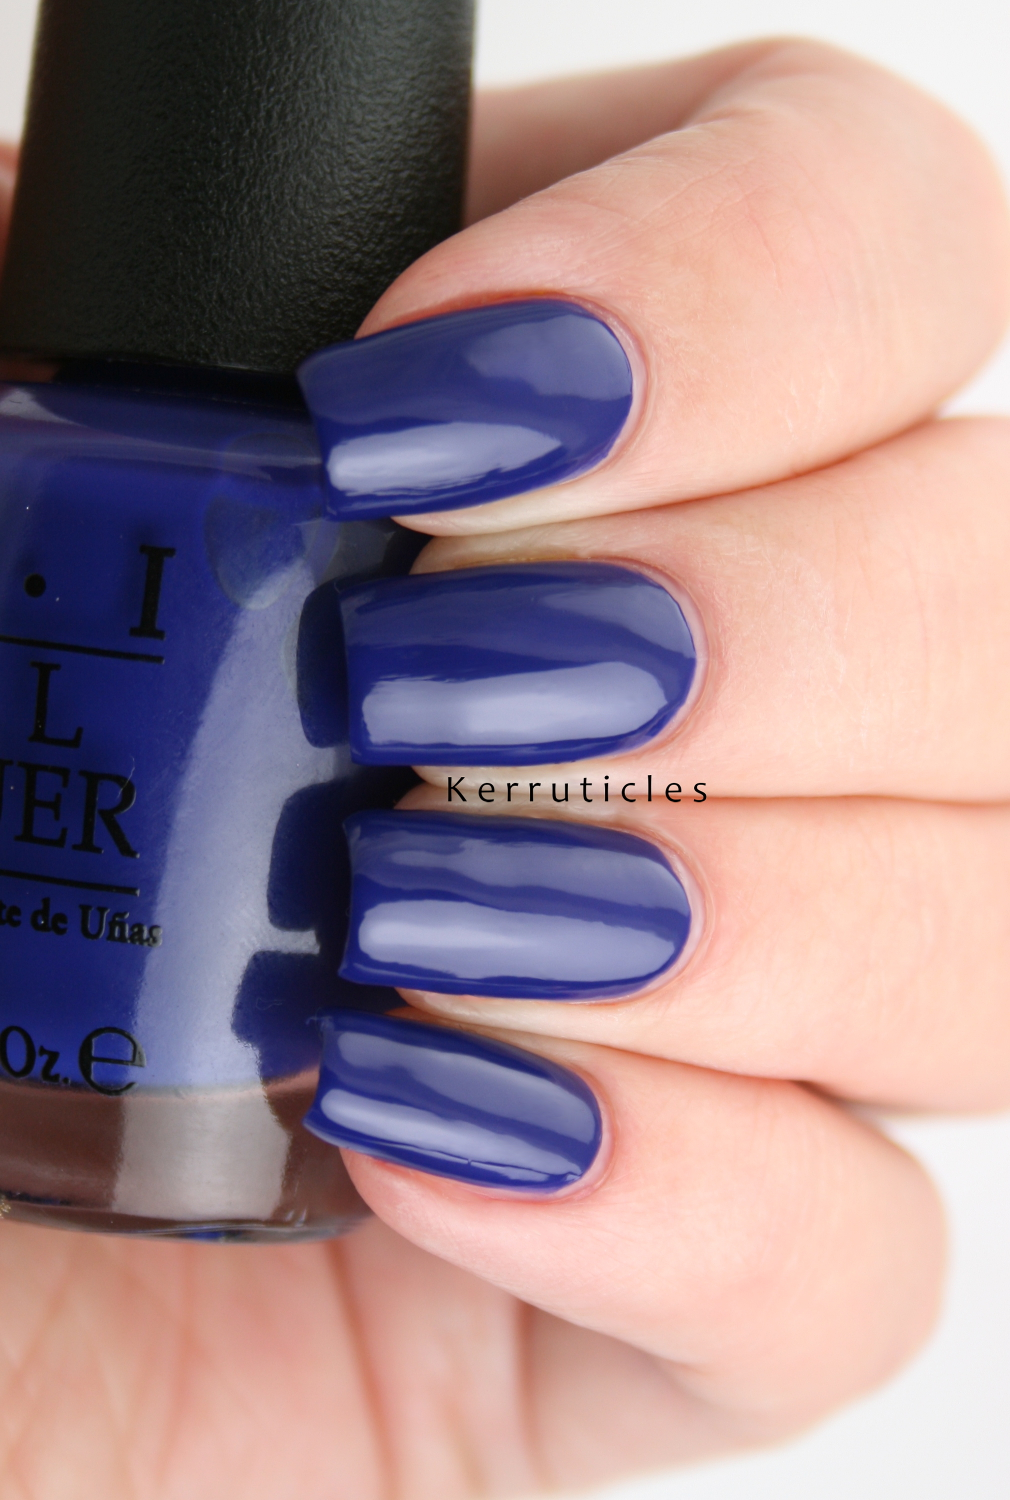 OPI OPI  Eurso Euro | Swatch and Review | Kerruticles